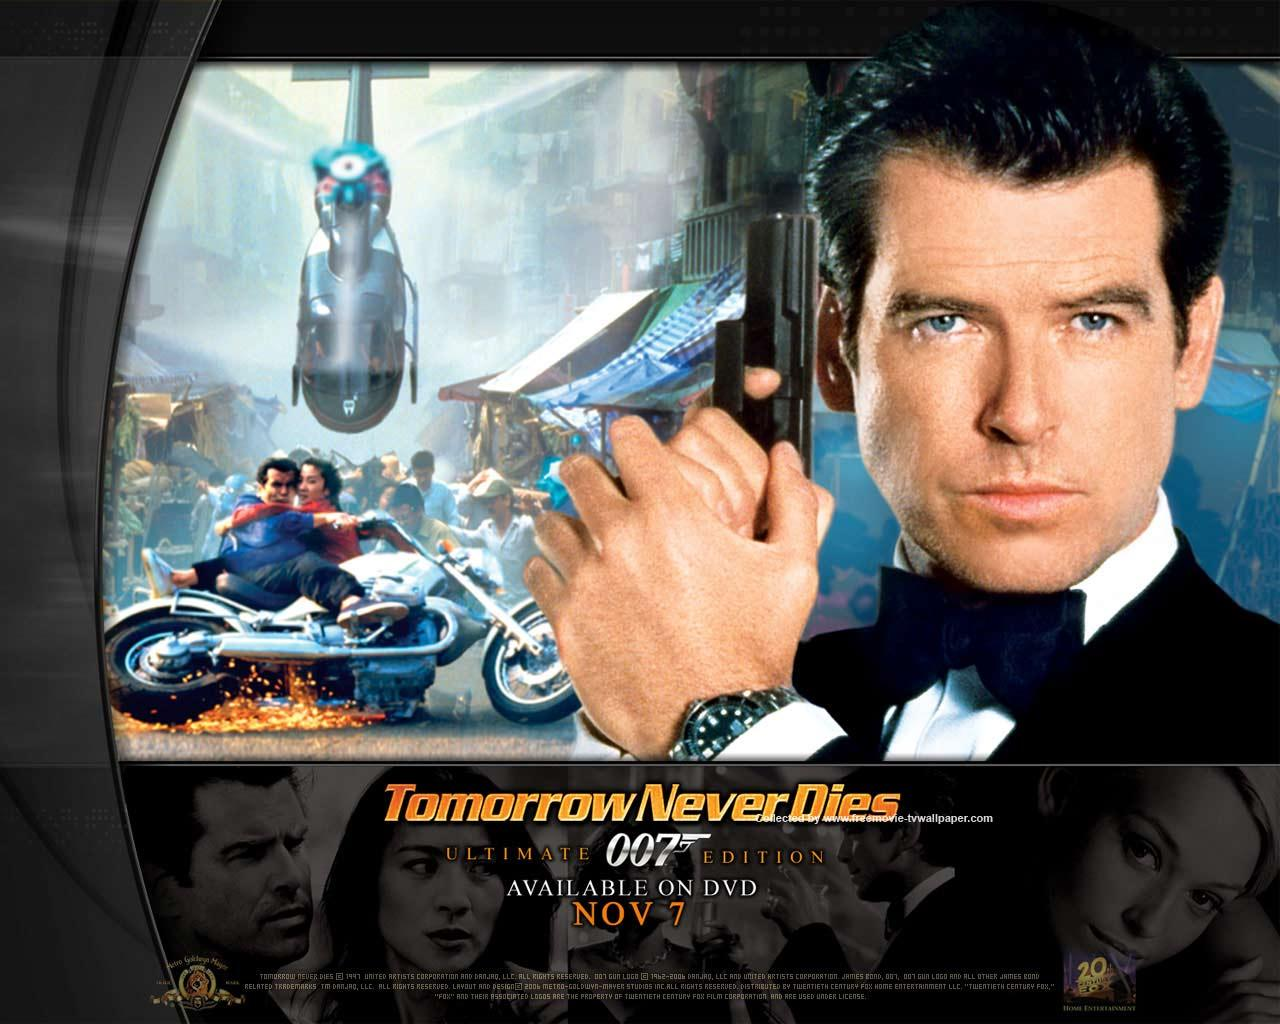 Anno 1997 Agente 007 - Pierce Brosnan as James Bond